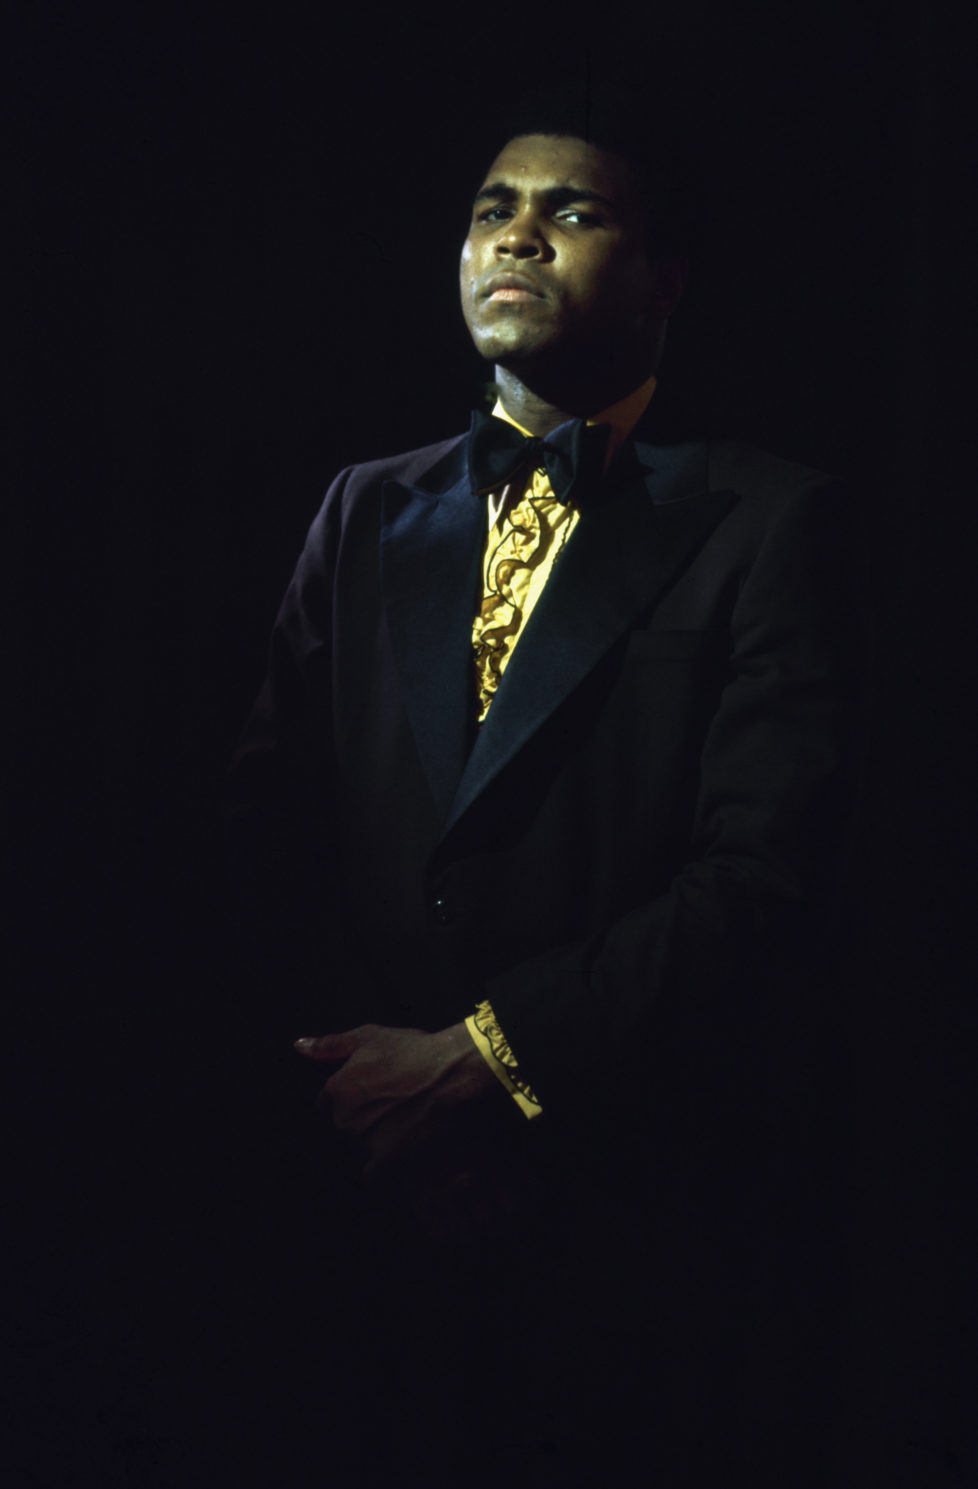 Portrait of American heavyweight boxer Muhammad Ali, in a tuxedo, ruffled yellow shirt, and bowtie, 1971. The portrait was taken prior to his first bout with Joe Frazier, where he unsuccessfully battled for the title belt on March 8, 1971 at Madison Square Garden. (Photo by John Shearer/The LIFE Picture Collection/Getty Images)